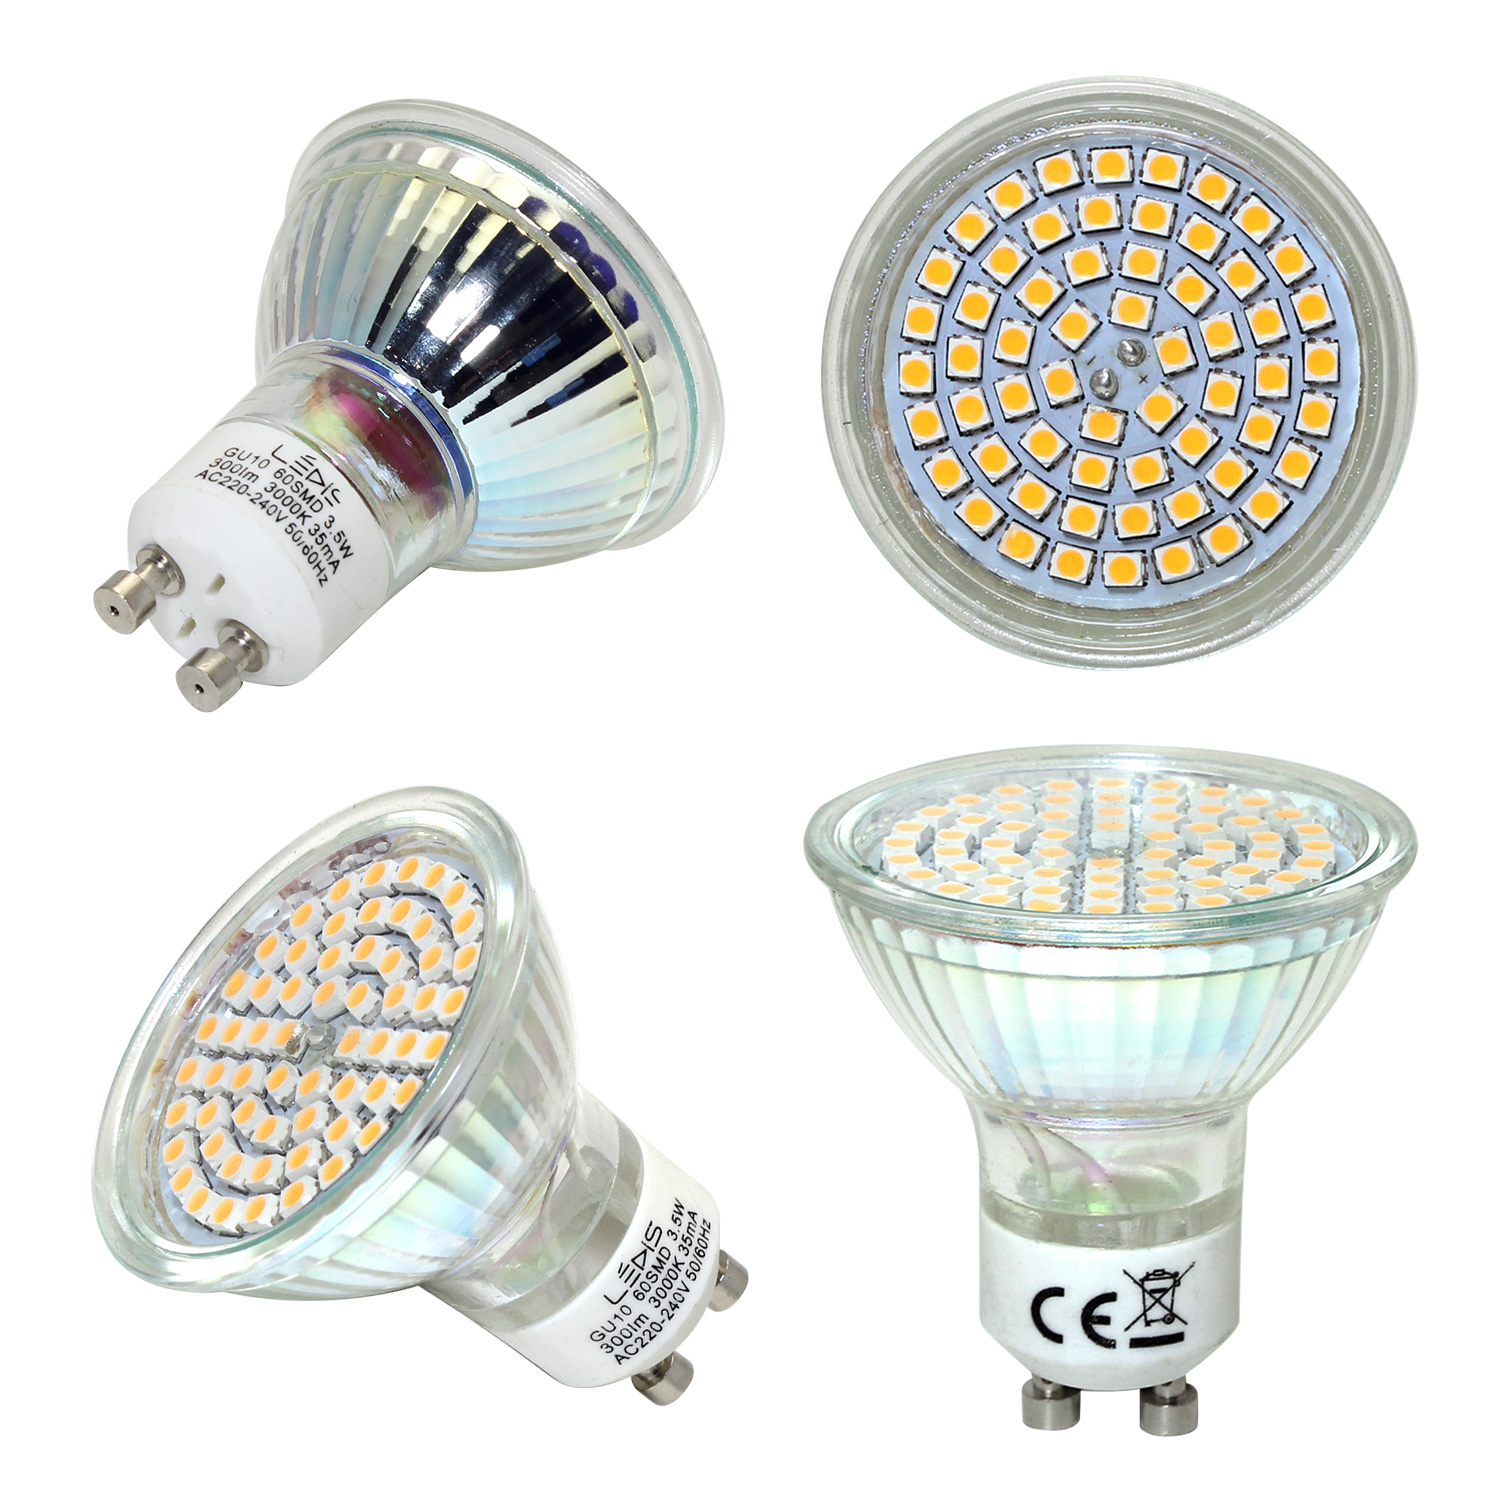 3 5w gu10 led ampoule 60smd projecteur lampe blanc chaud pur 300lm 120 degr s ebay. Black Bedroom Furniture Sets. Home Design Ideas